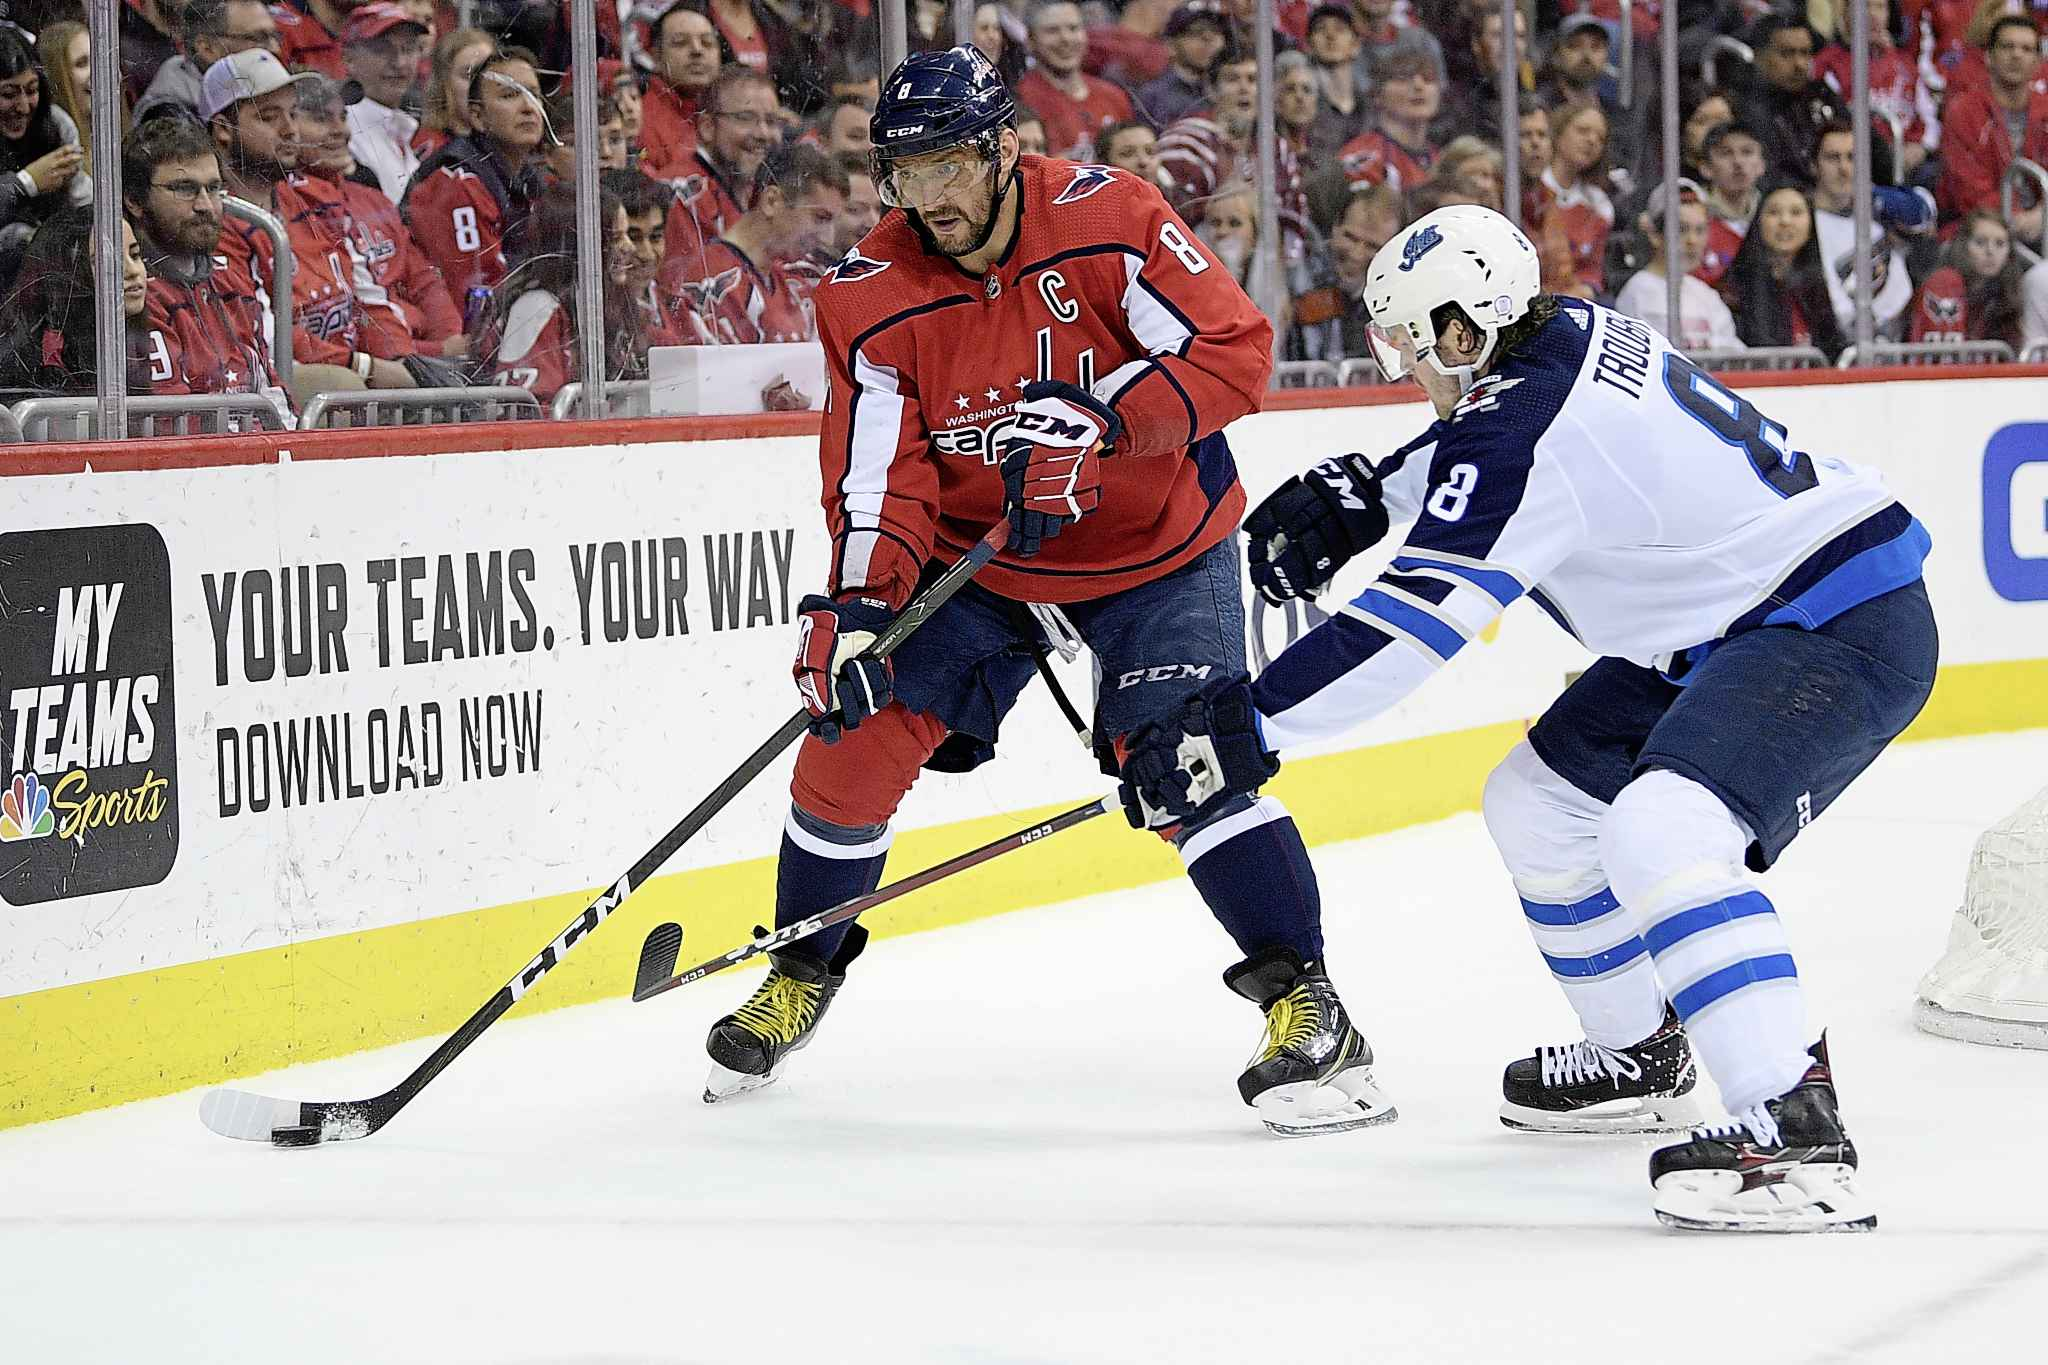 NICK WASS / THE ASSOCIATED PRESS</p><p>Washington Capitals left wing Alex Ovechkin, left, of Russia, skates with the puck against Winnipeg Jets defenseman Jacob Trouba, right, during the first period of an NHL hockey game, Sunday, March 10, 2019, in Washington.</p>